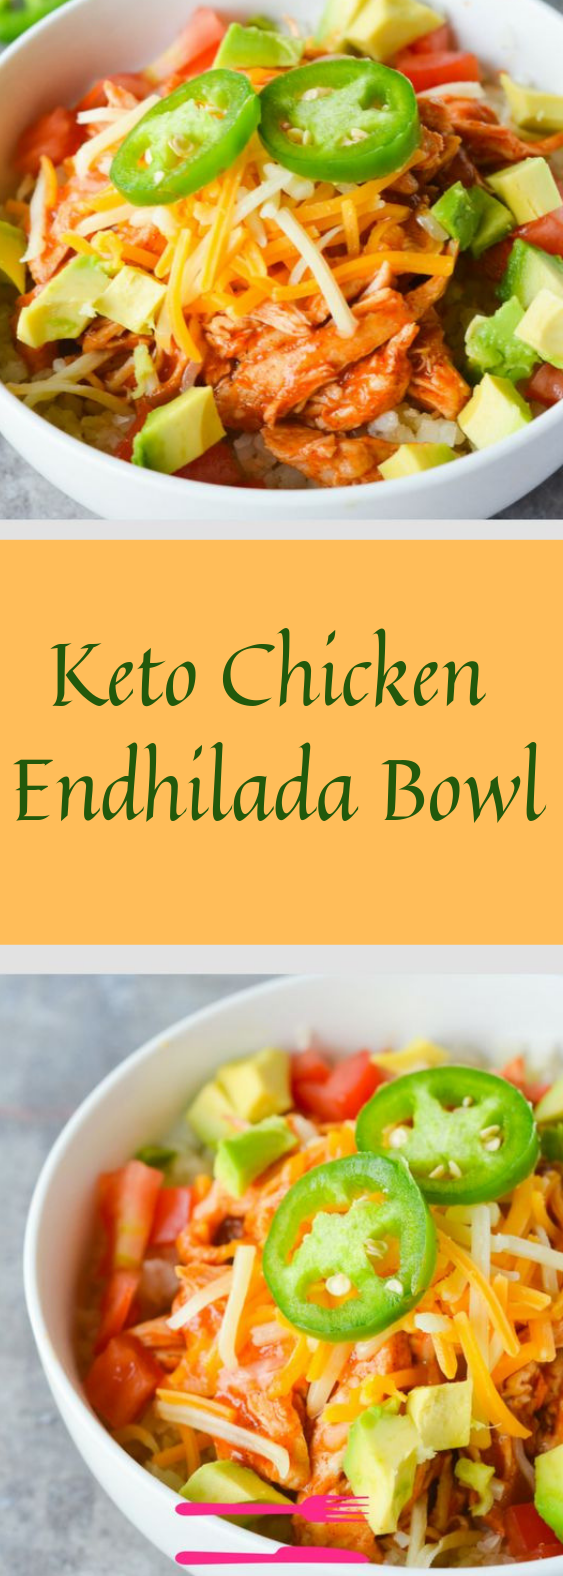 KETO CHICKEN ENCHILADA BOWL #diet #keto